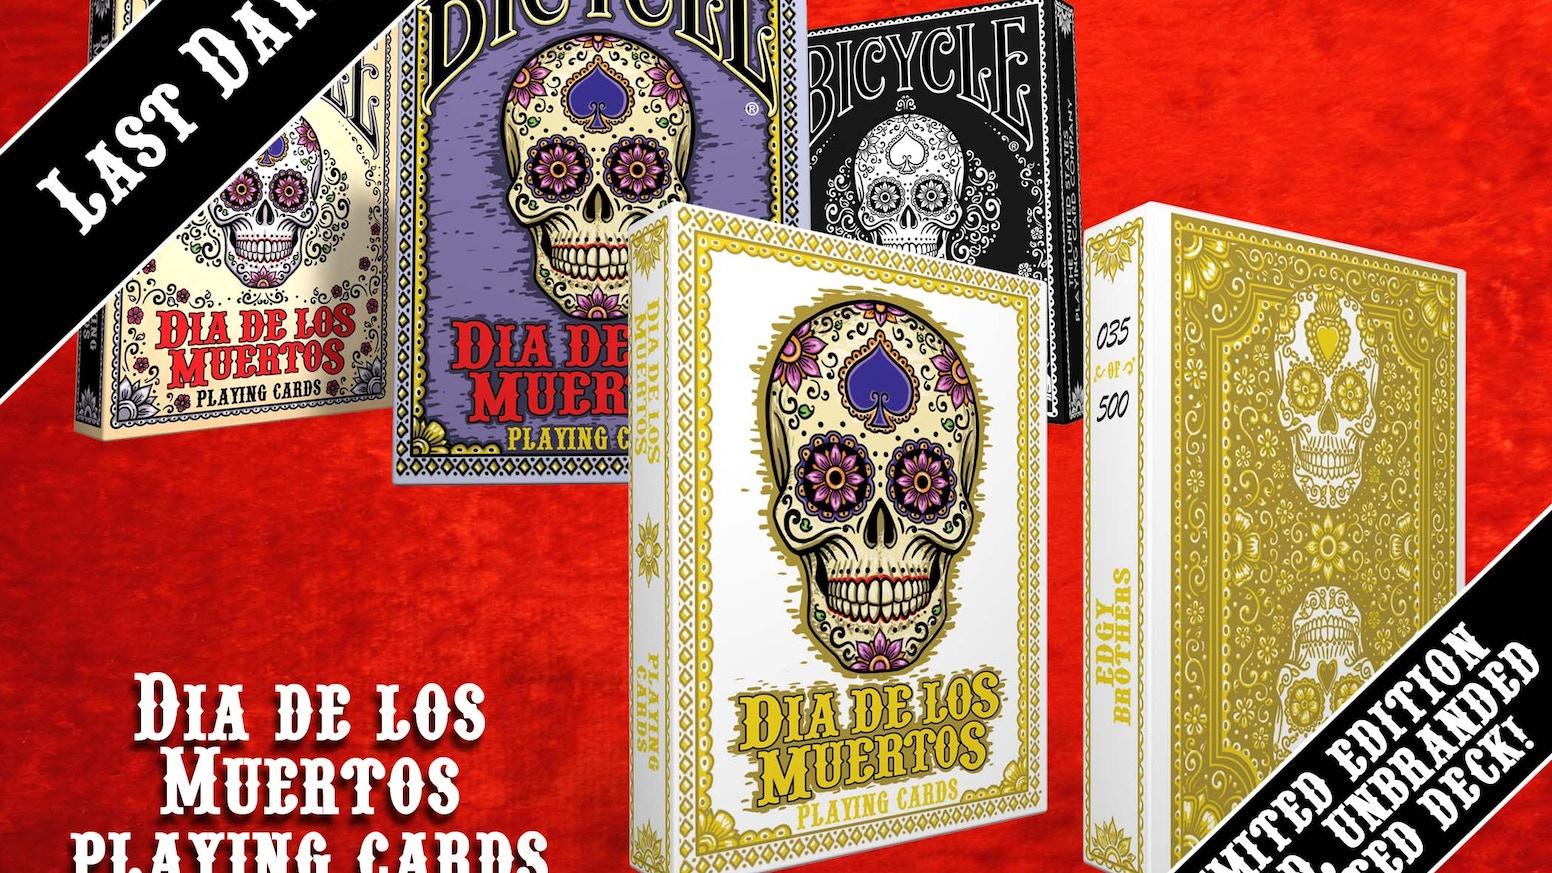 Dia de Los Muertos Bicycle Playing Cards by Edgy Brothers — Kickstarter